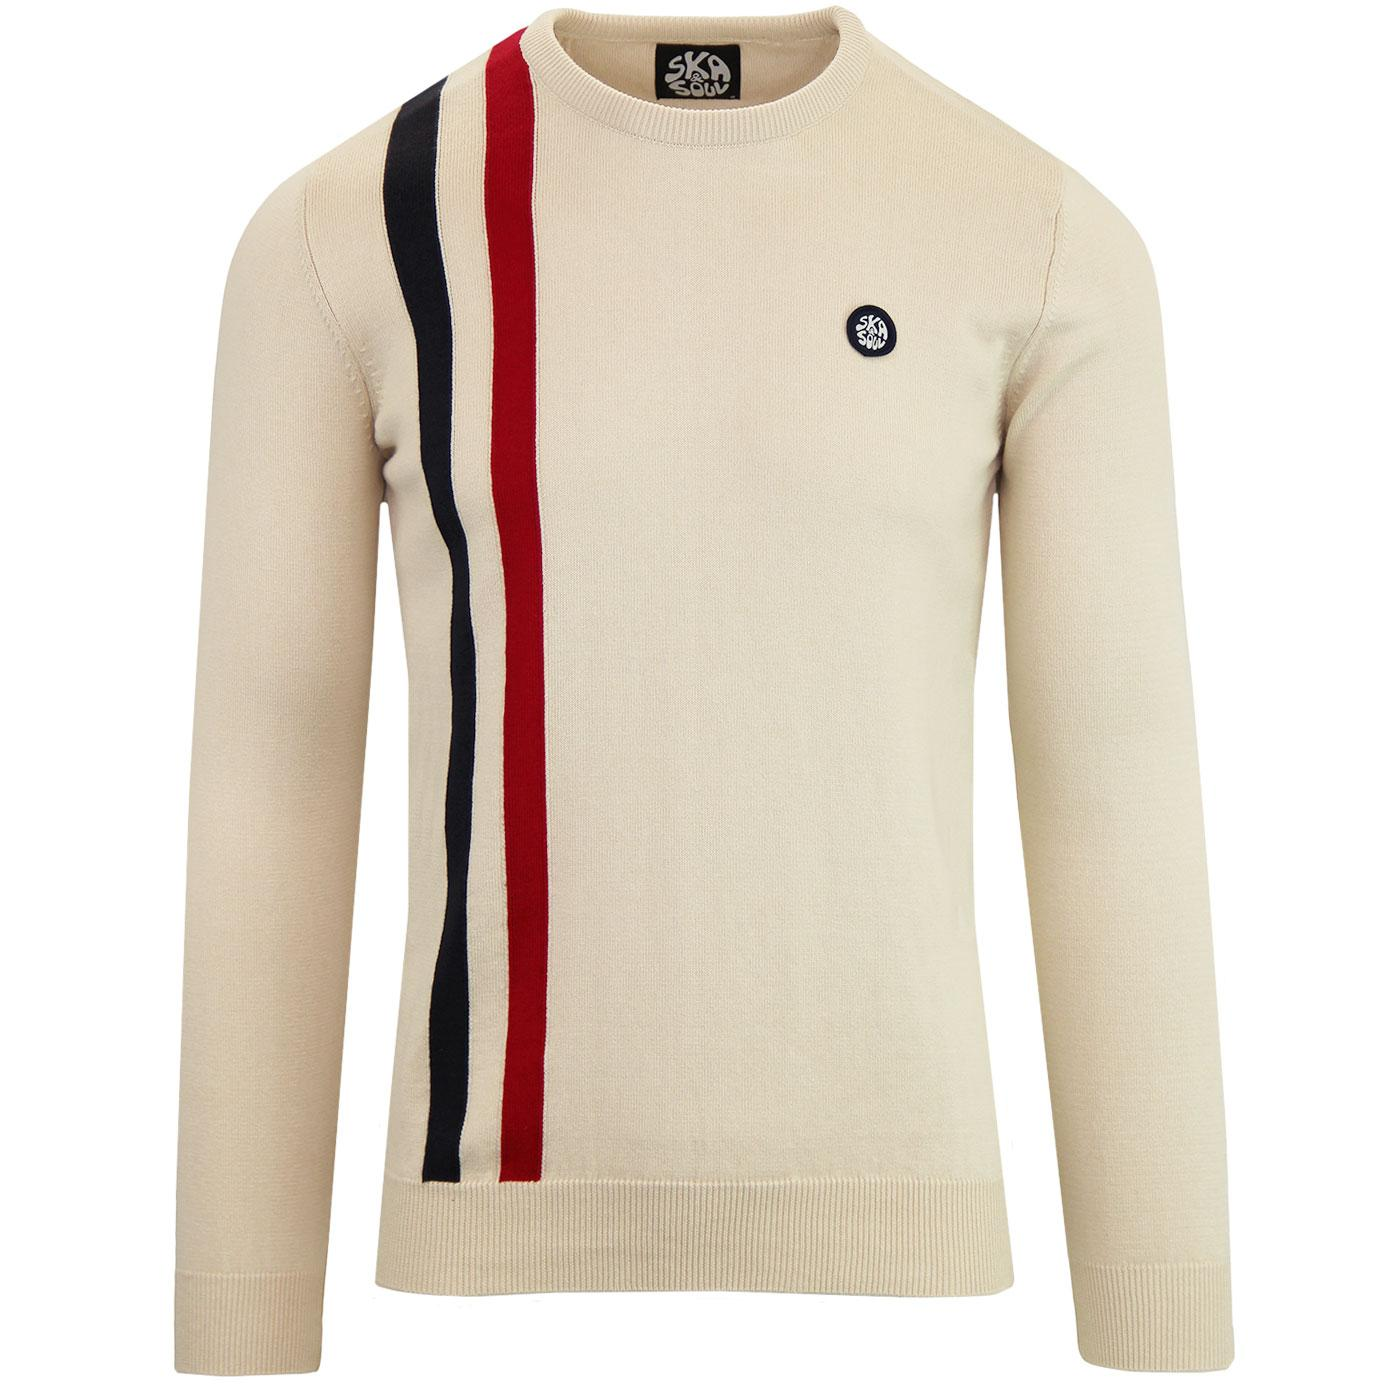 SKA & SOUL 60s Mod Knitted Racing Jumper In Stone